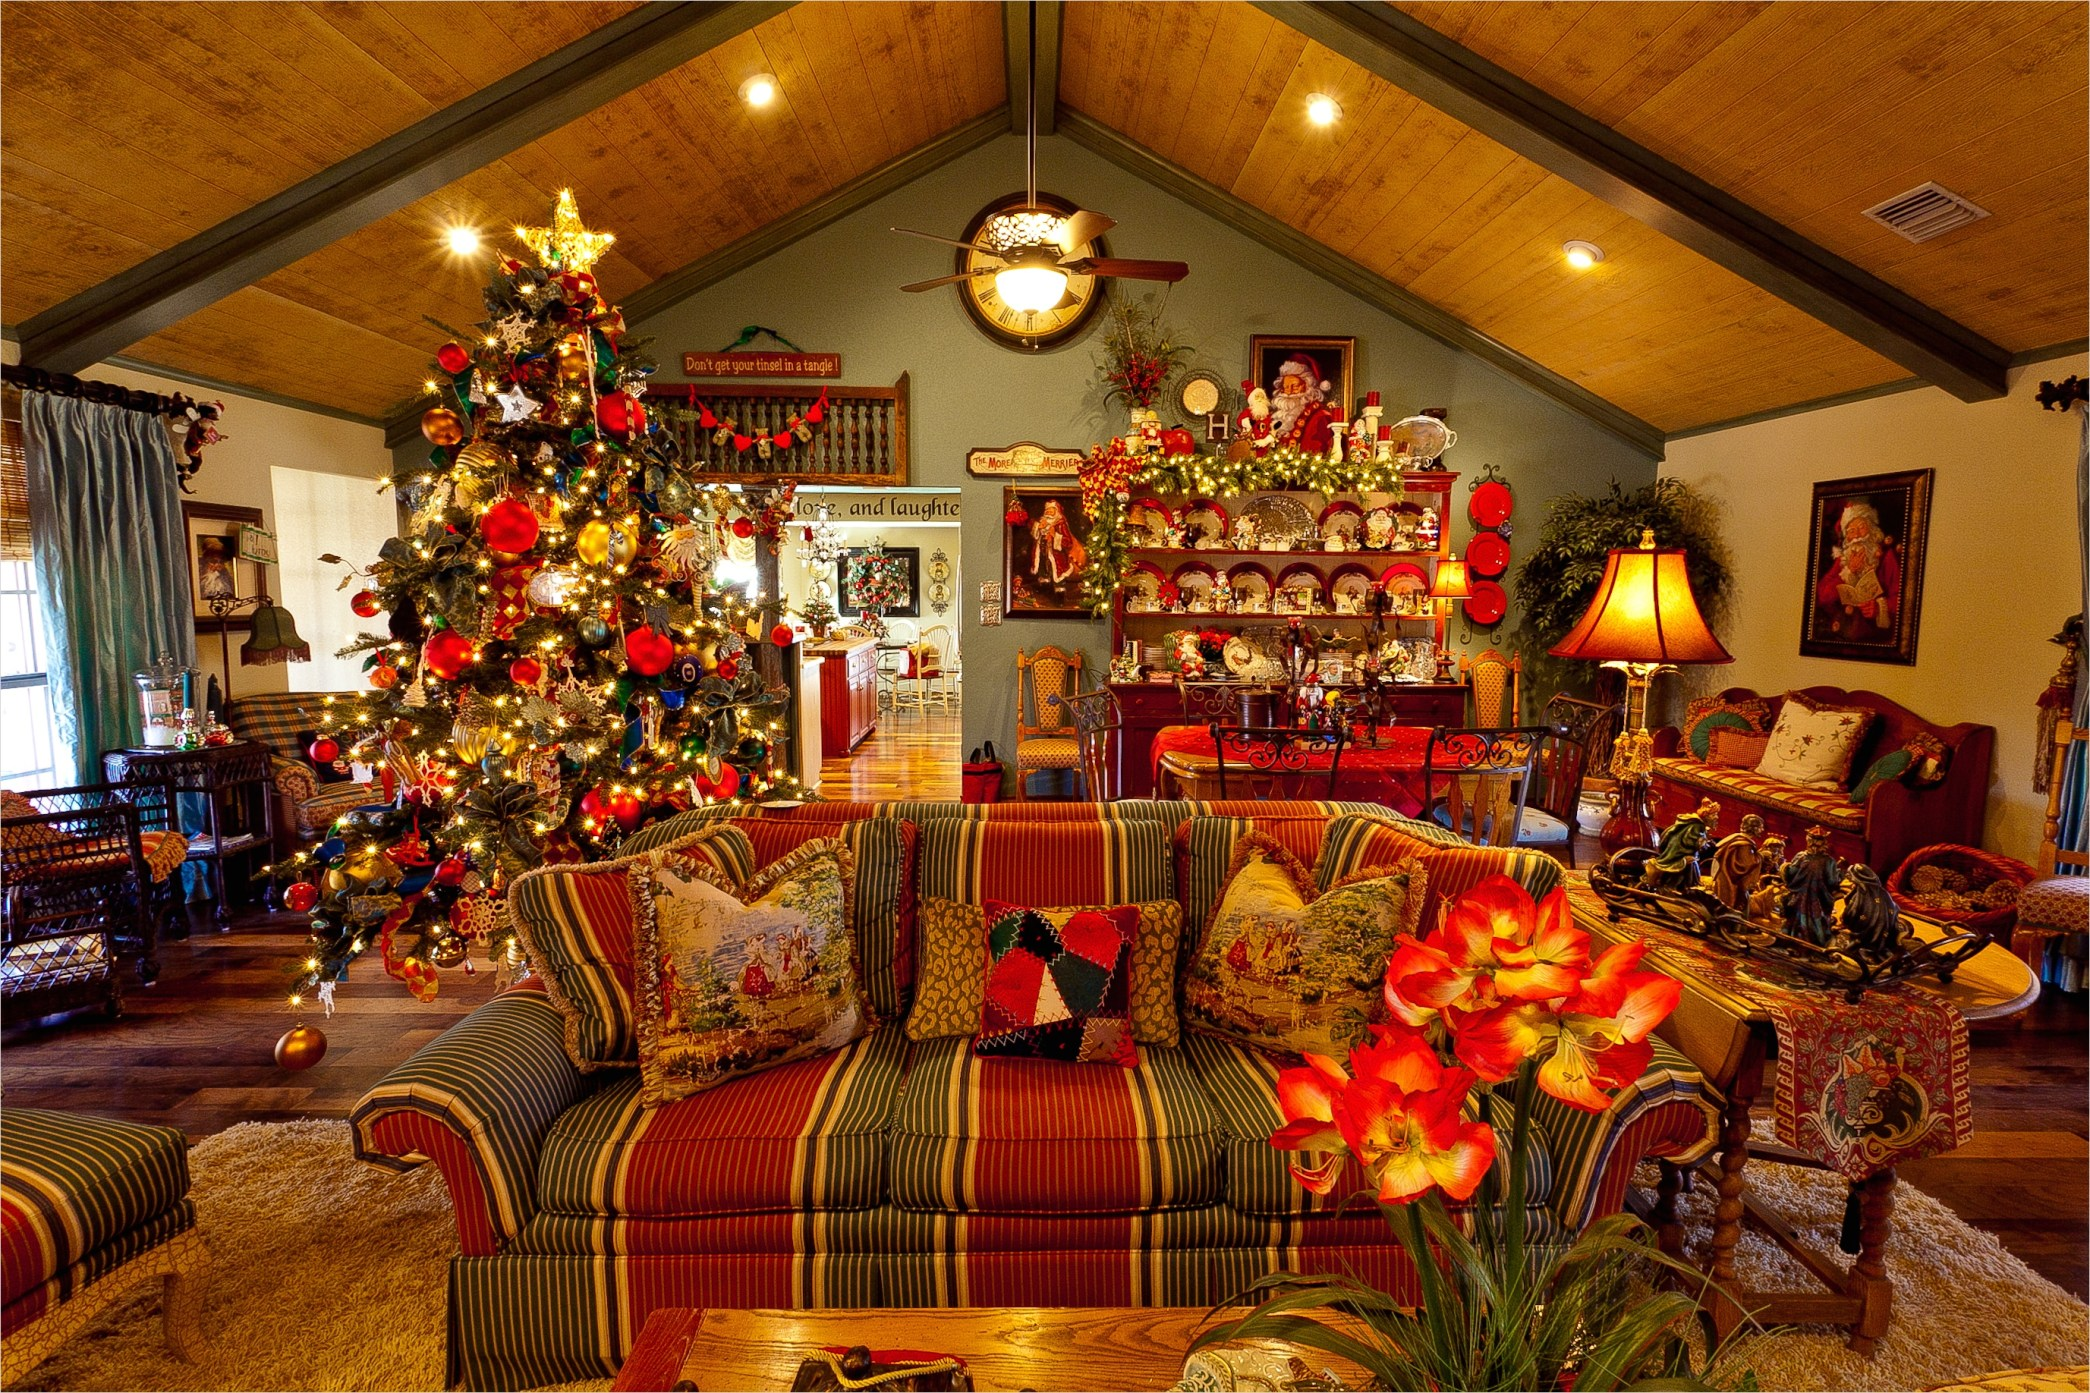 41 Amazing Country Christmas Decorating Ideas 41 Show Me A Country French Home Dressed for Christmas 7